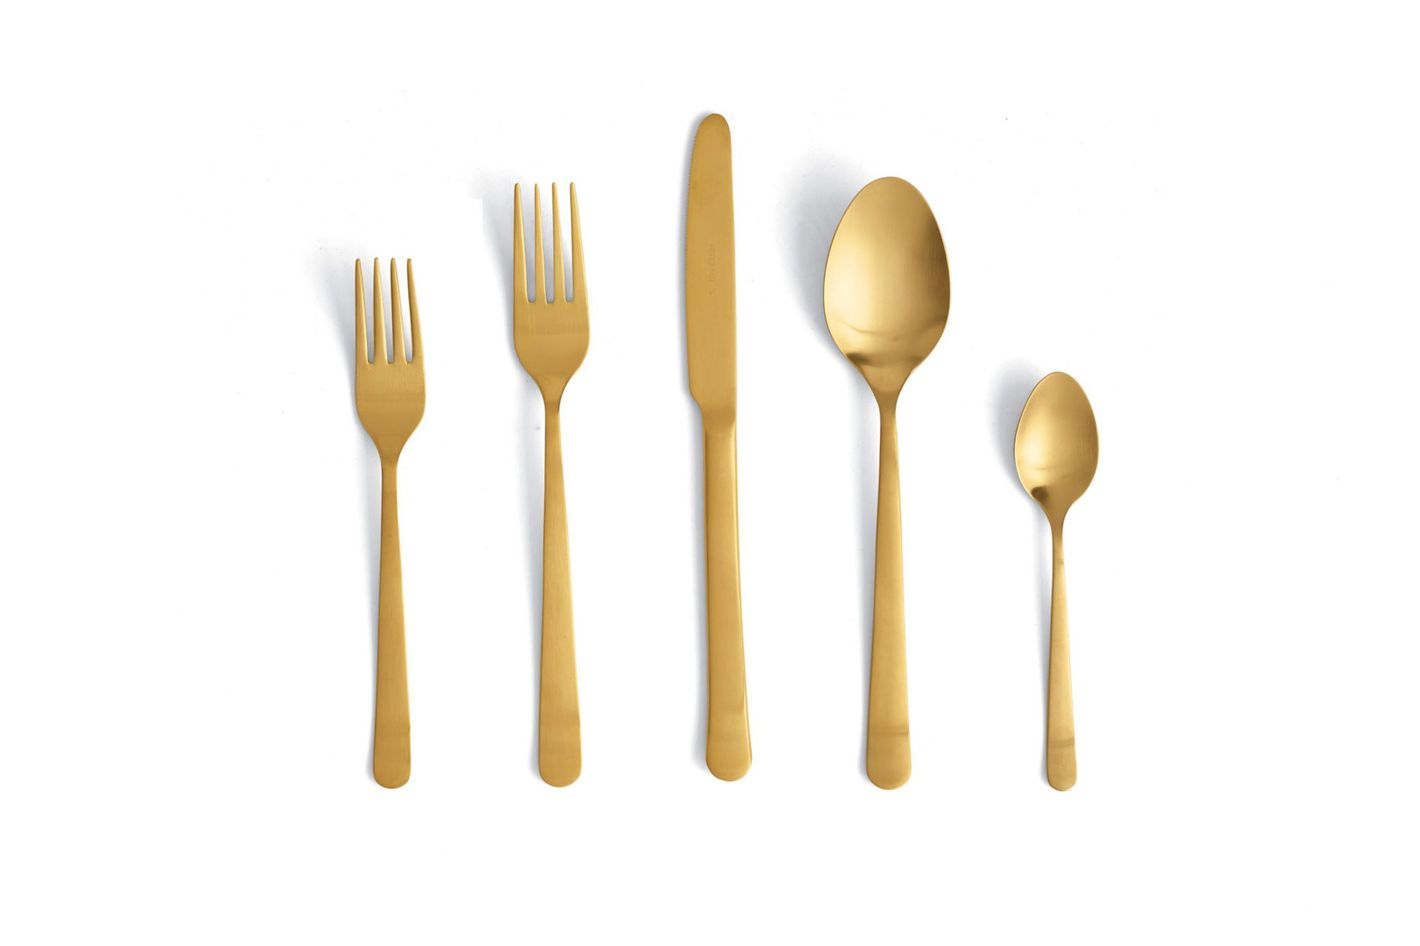 Almoco Flatware in Matte Gold